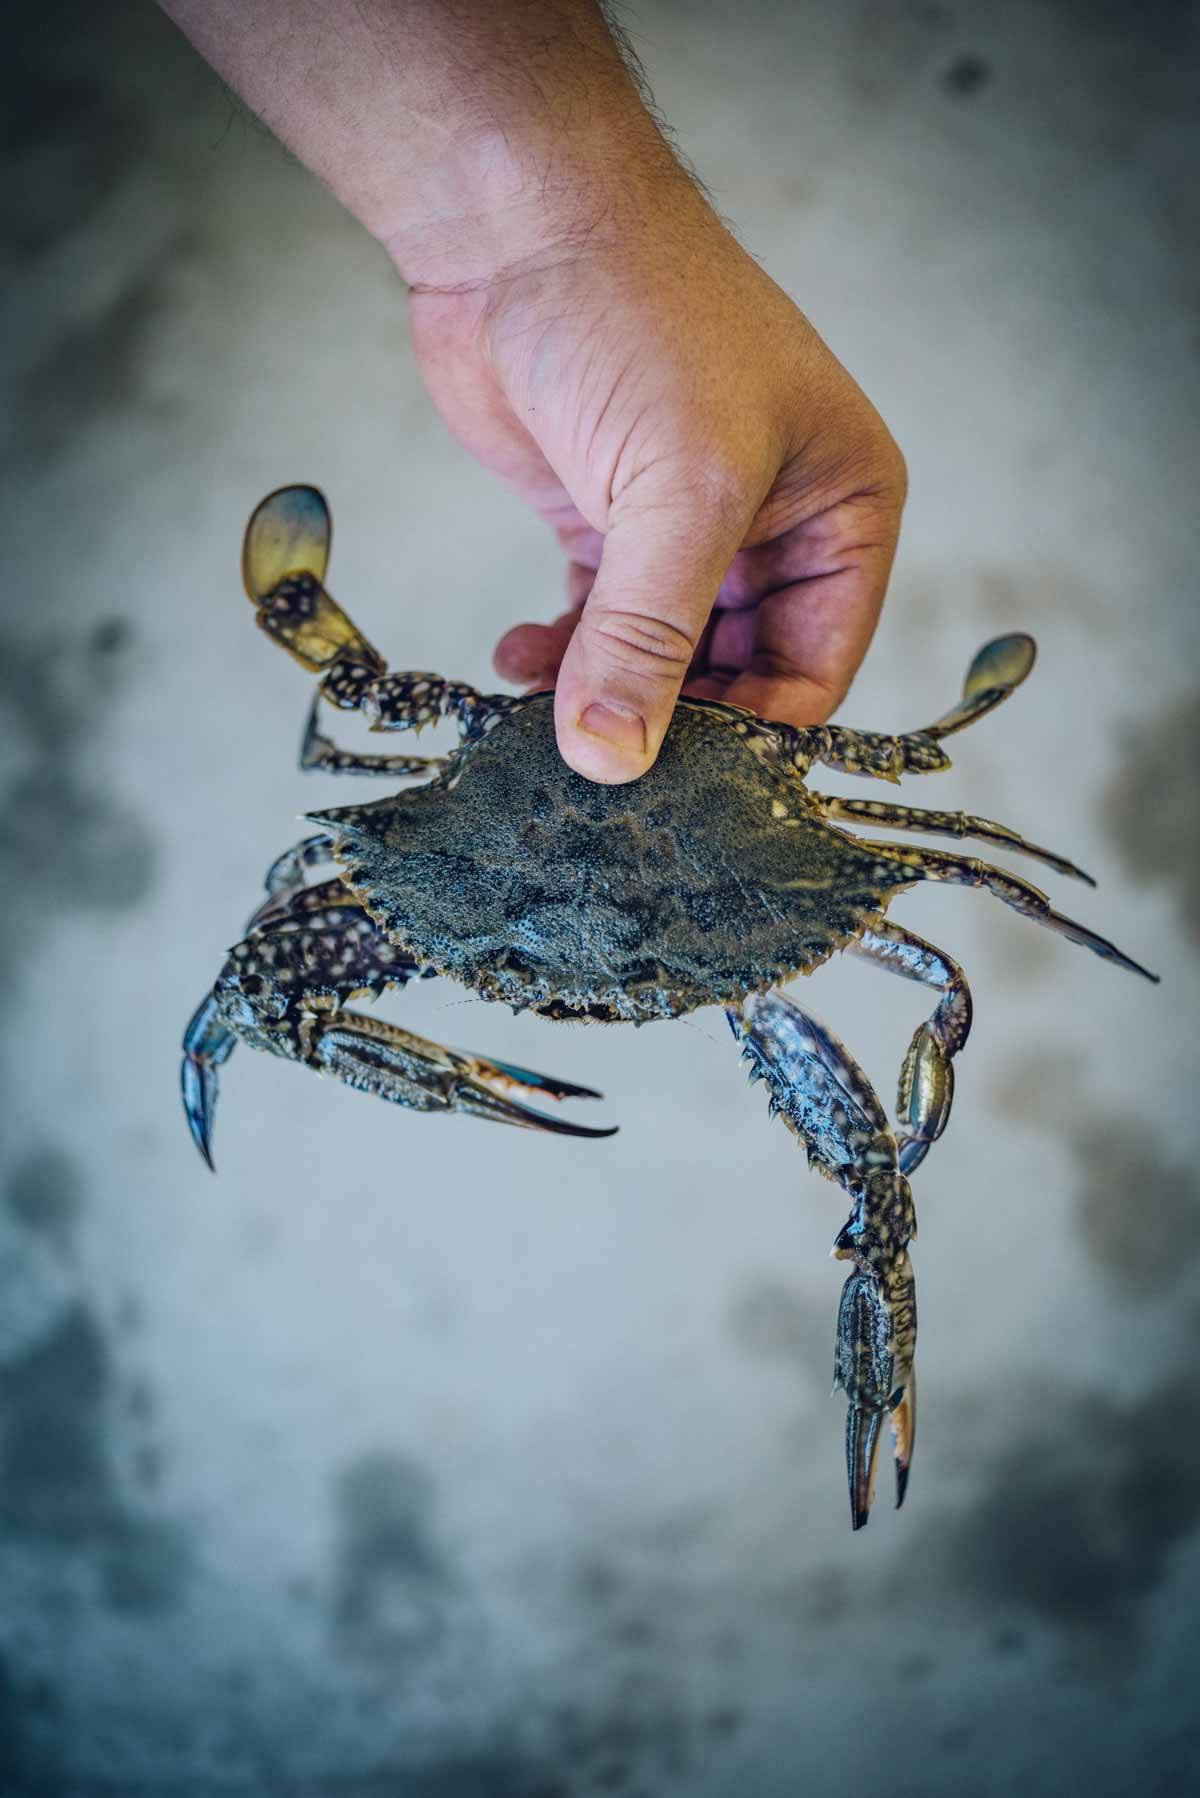 Blue Swimmer Crabs | Chew Town Food Blog